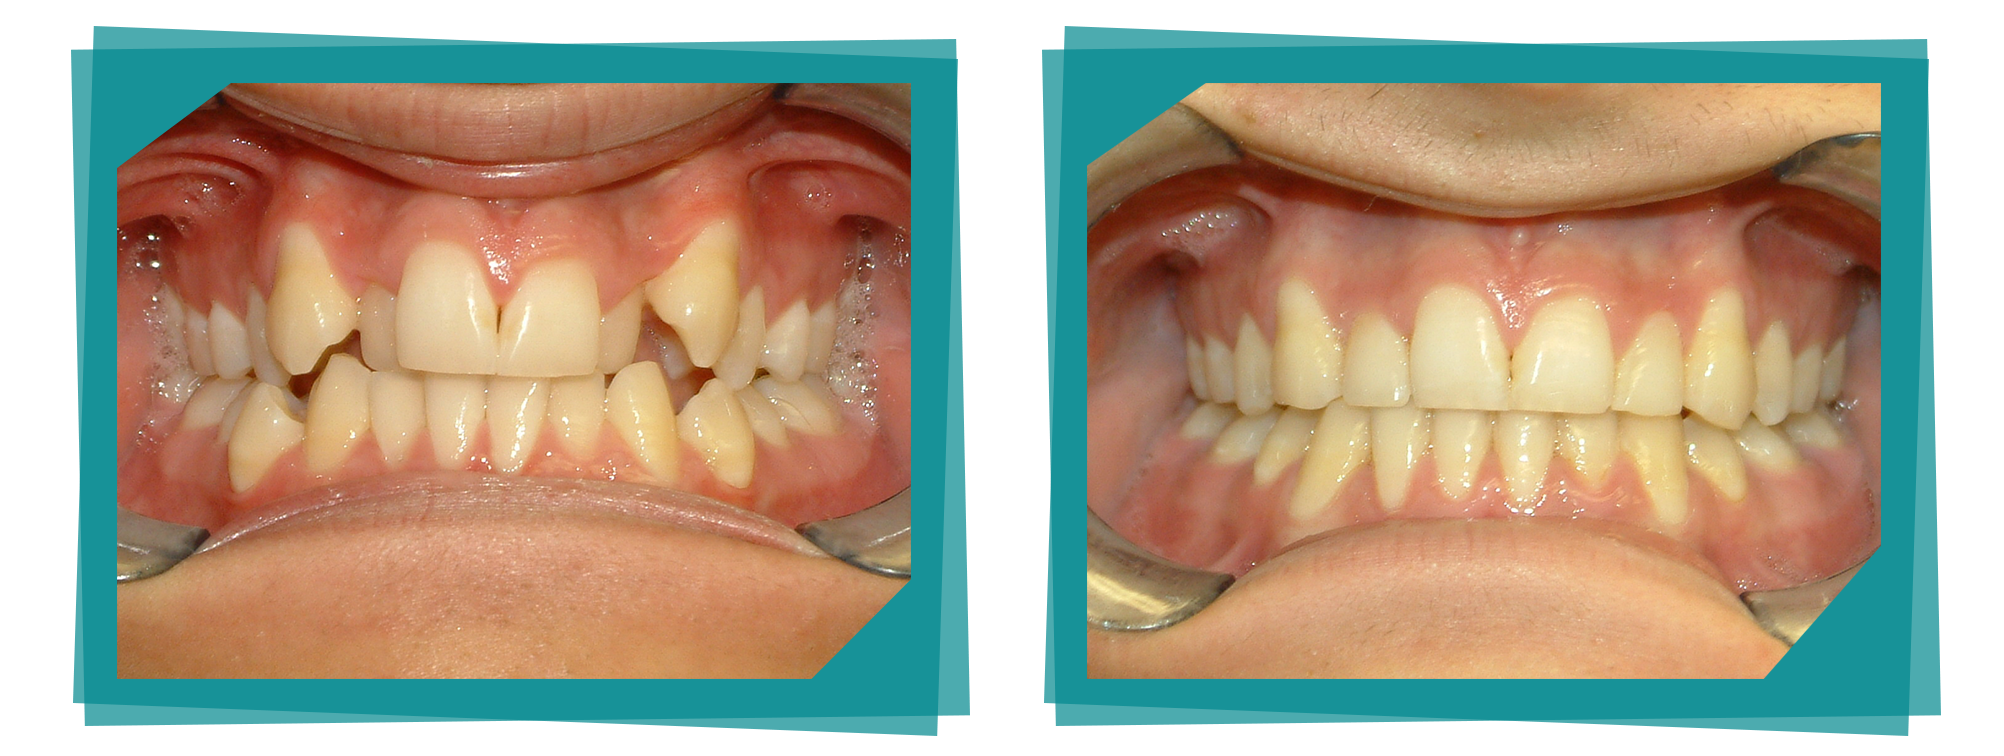 Before and after at the Parkcrest Dental Group.